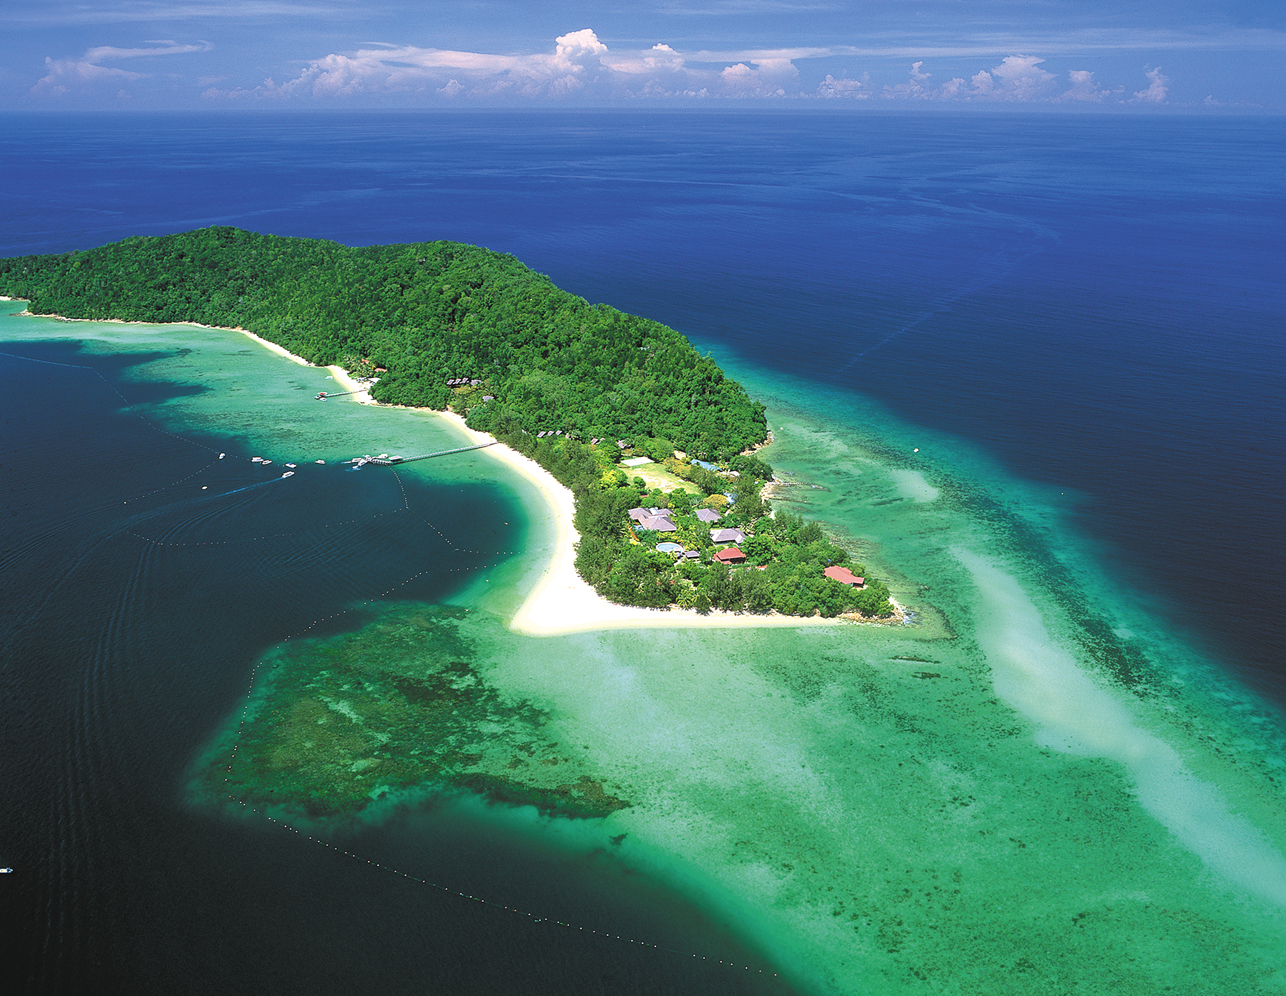 A Picture Of Alvin S Island